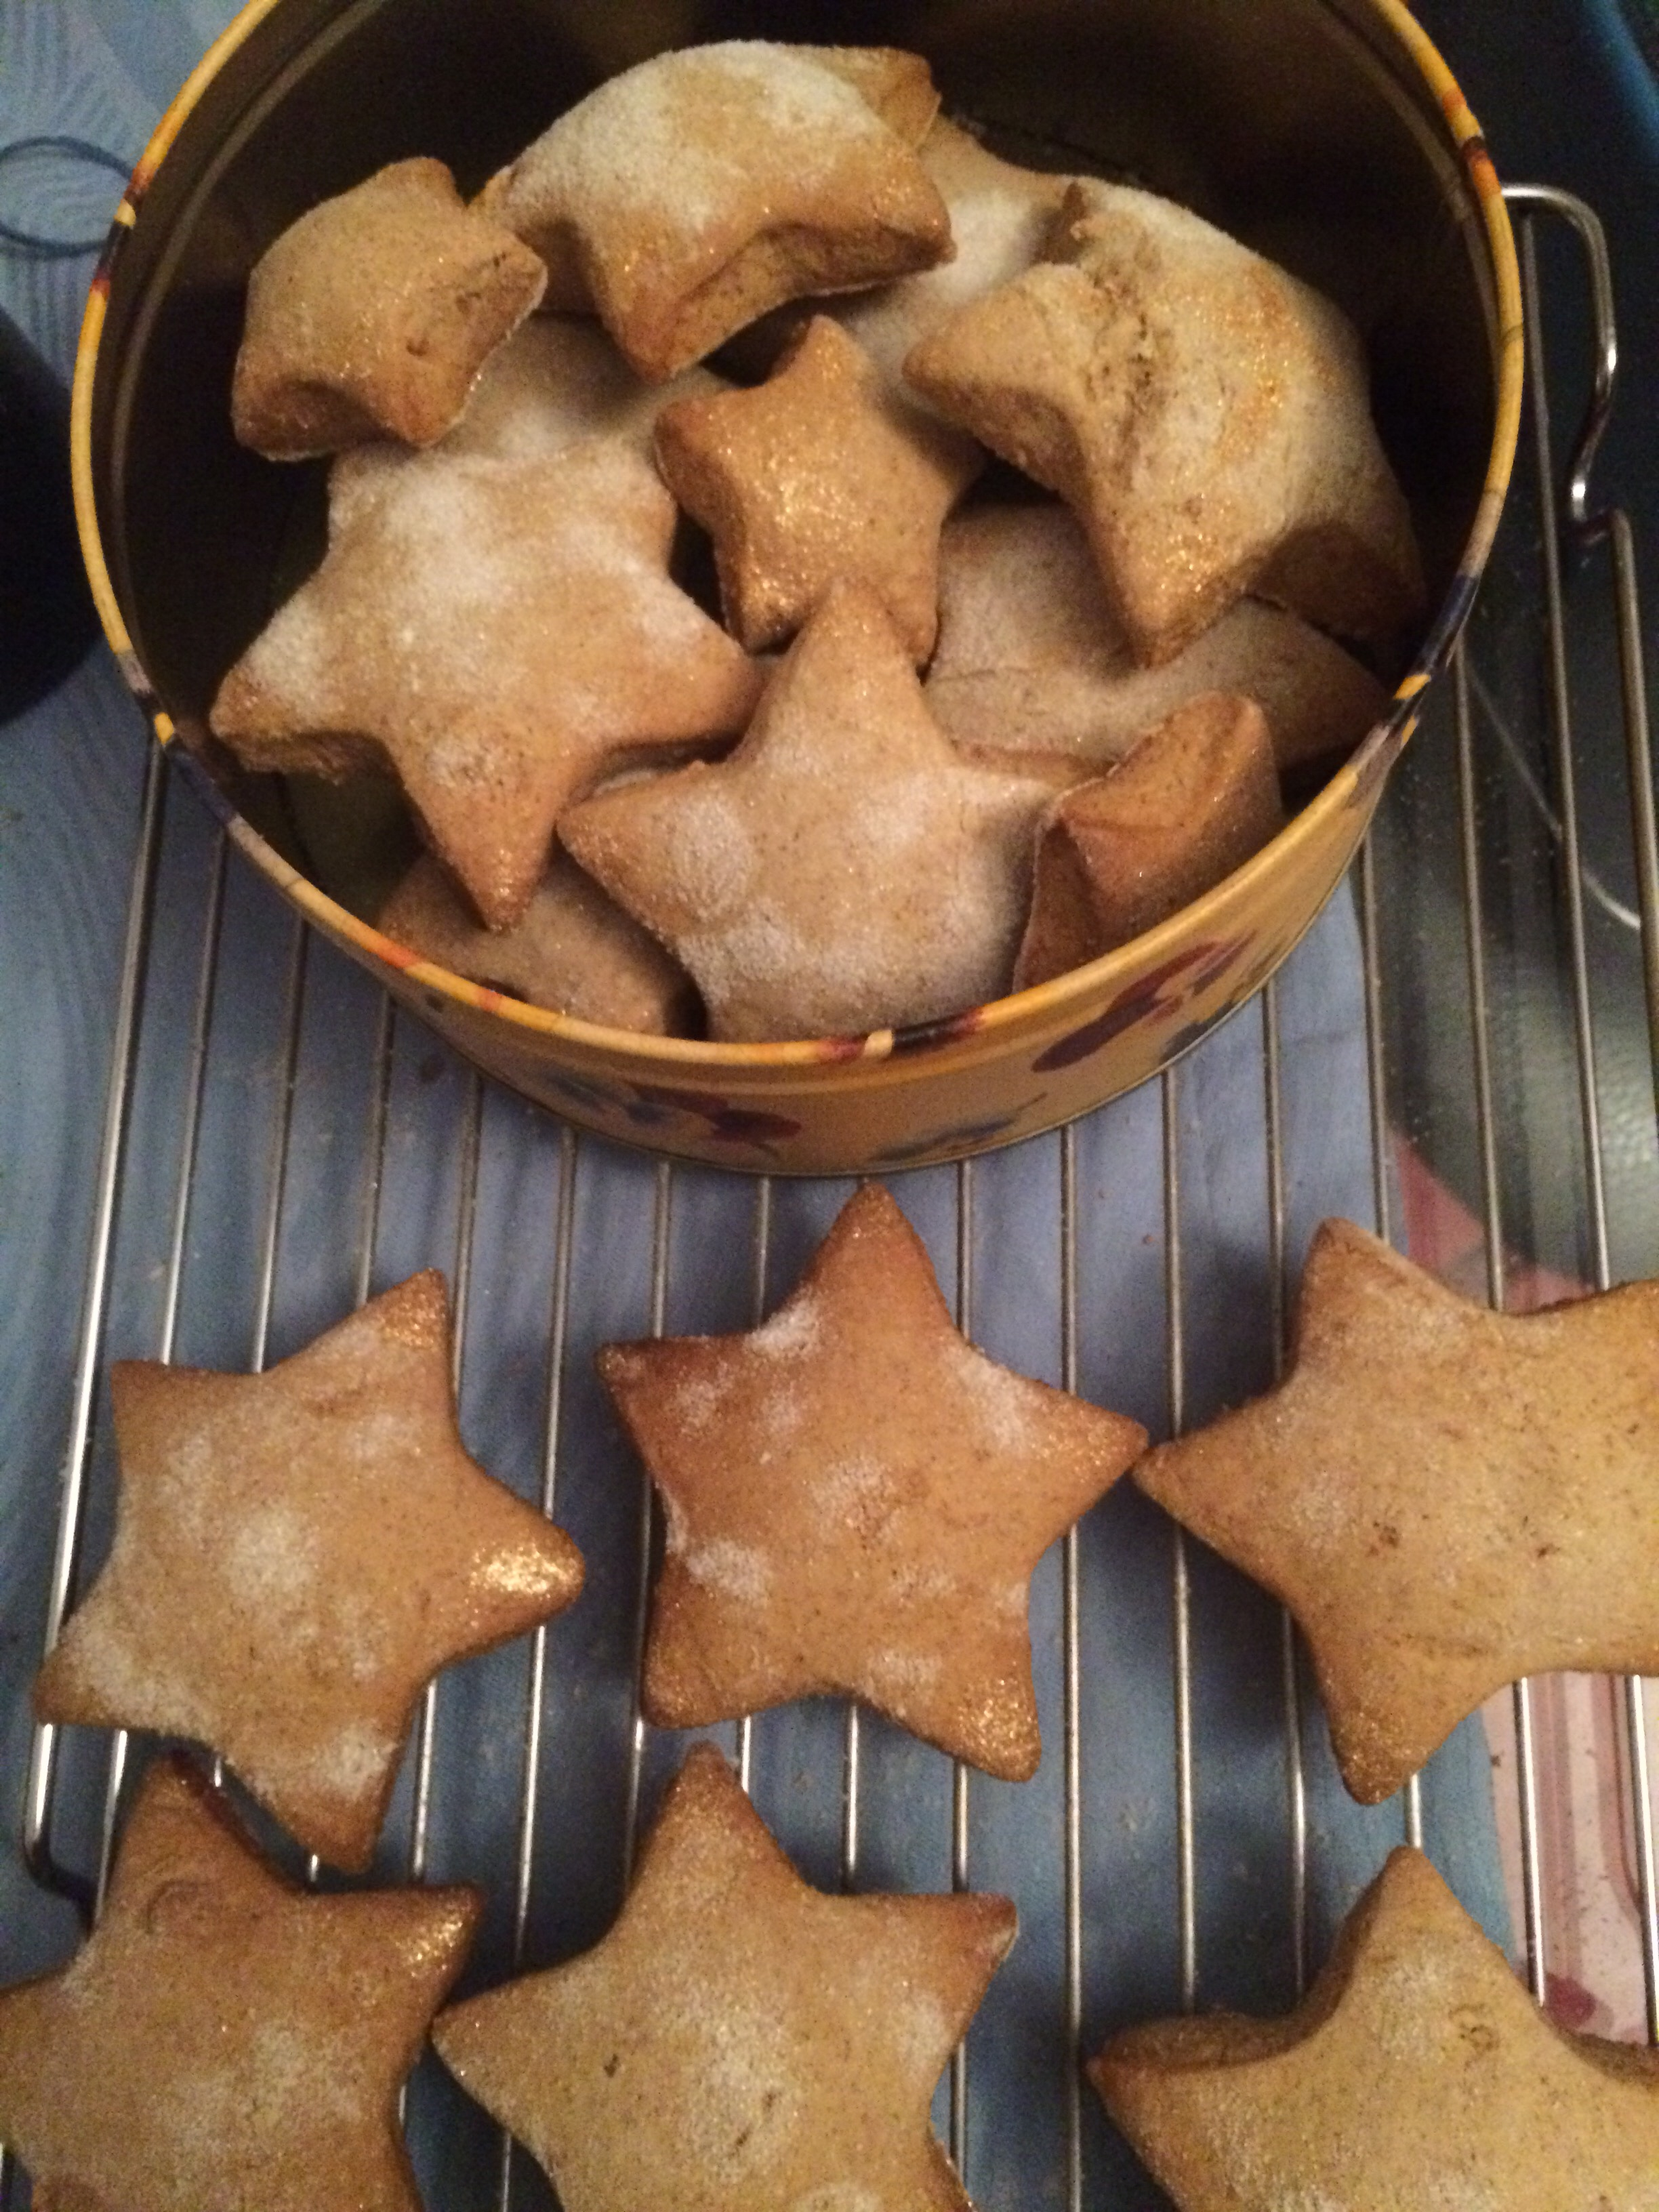 Shooting Star Biscuits